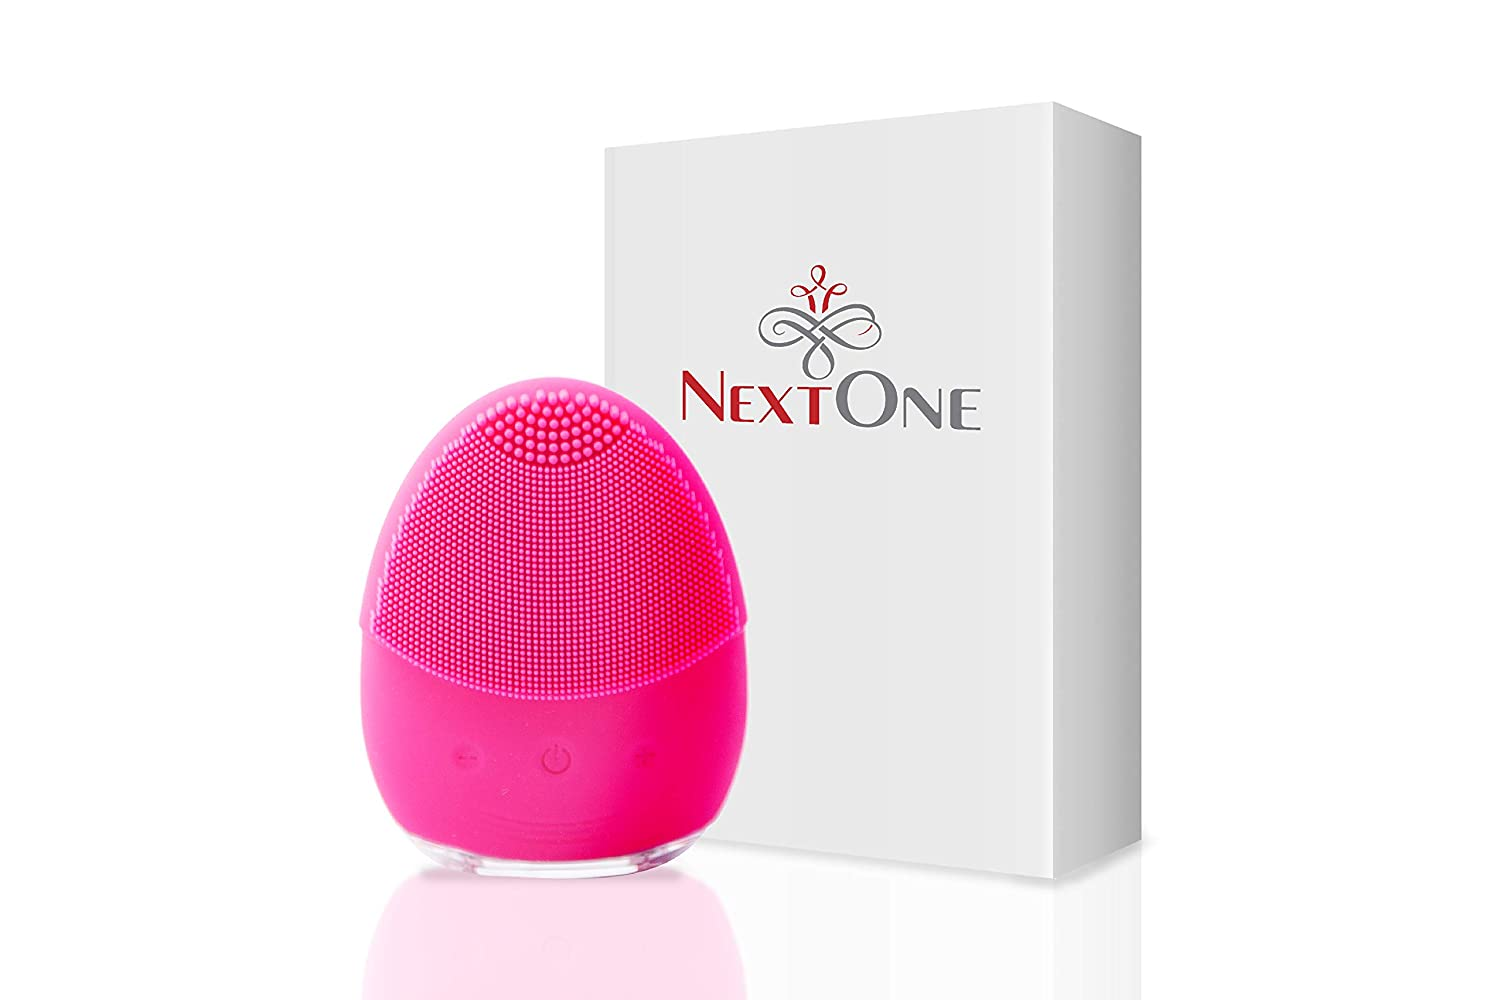 Waterproof Facial Cleansing Brush – Cleanser Sonic Silicone Face Scrubber For Cleaning All Skin Type – Face Scrubber Electric with Rechargeable USB – Recommended facial cleanser brush by Dermatologist